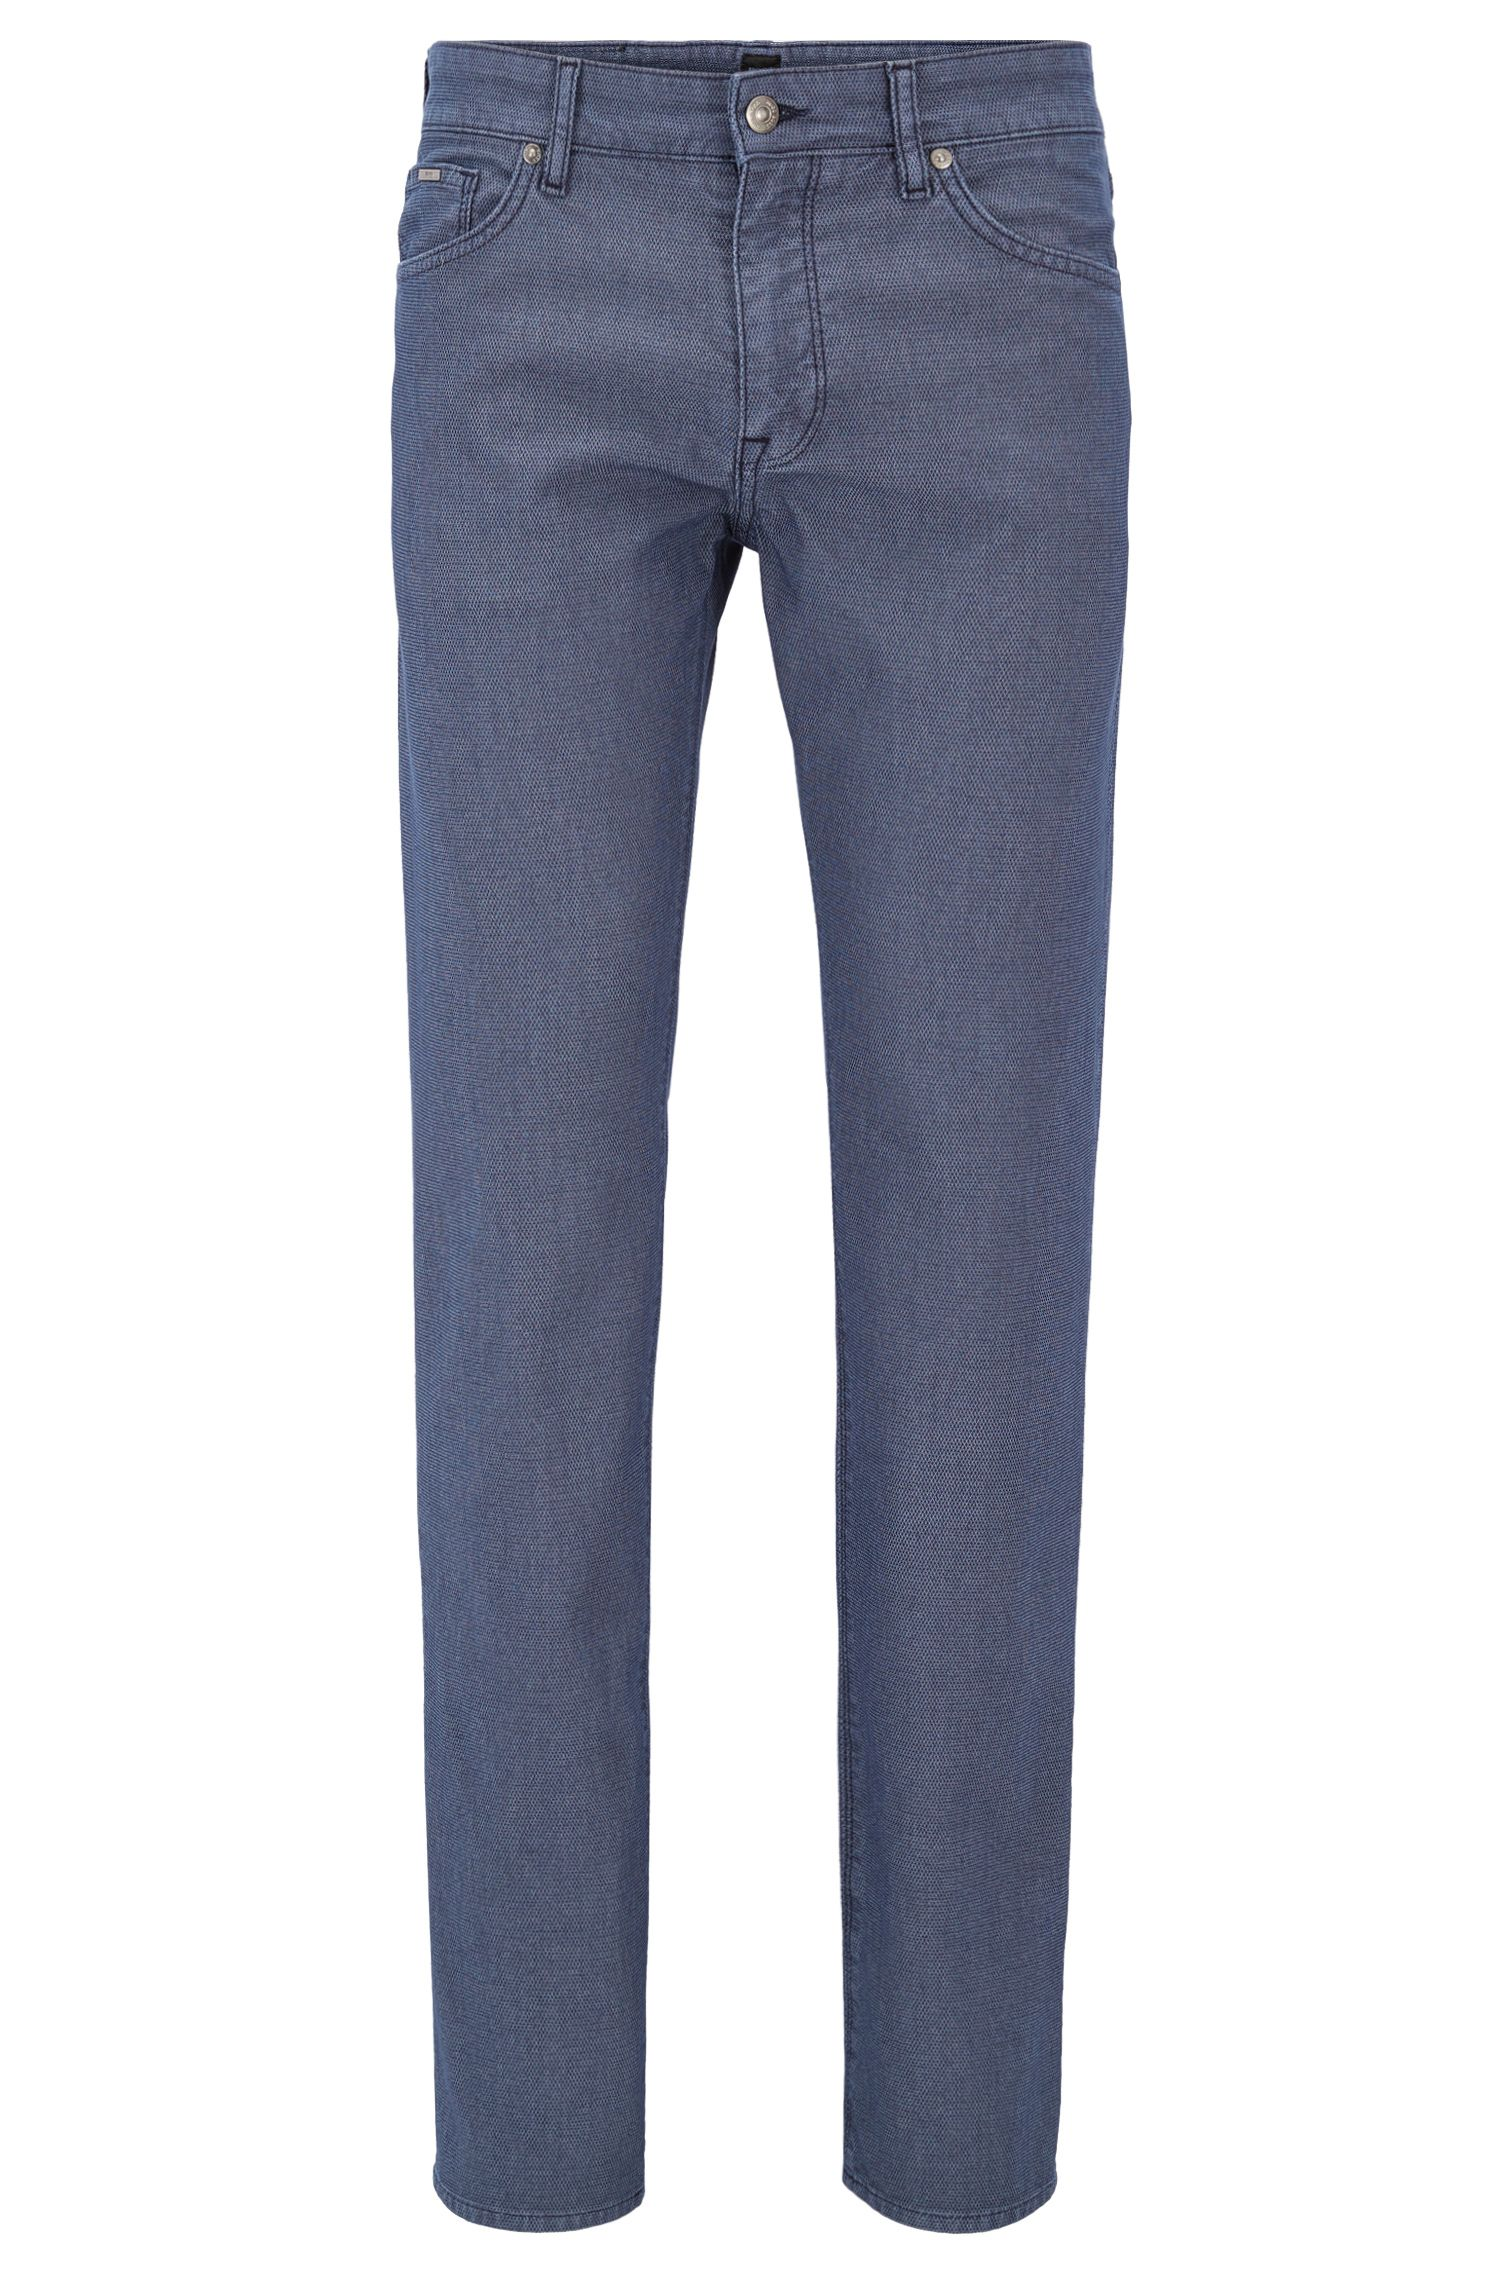 Cotton Blend Pant, Regular Fit | Maine